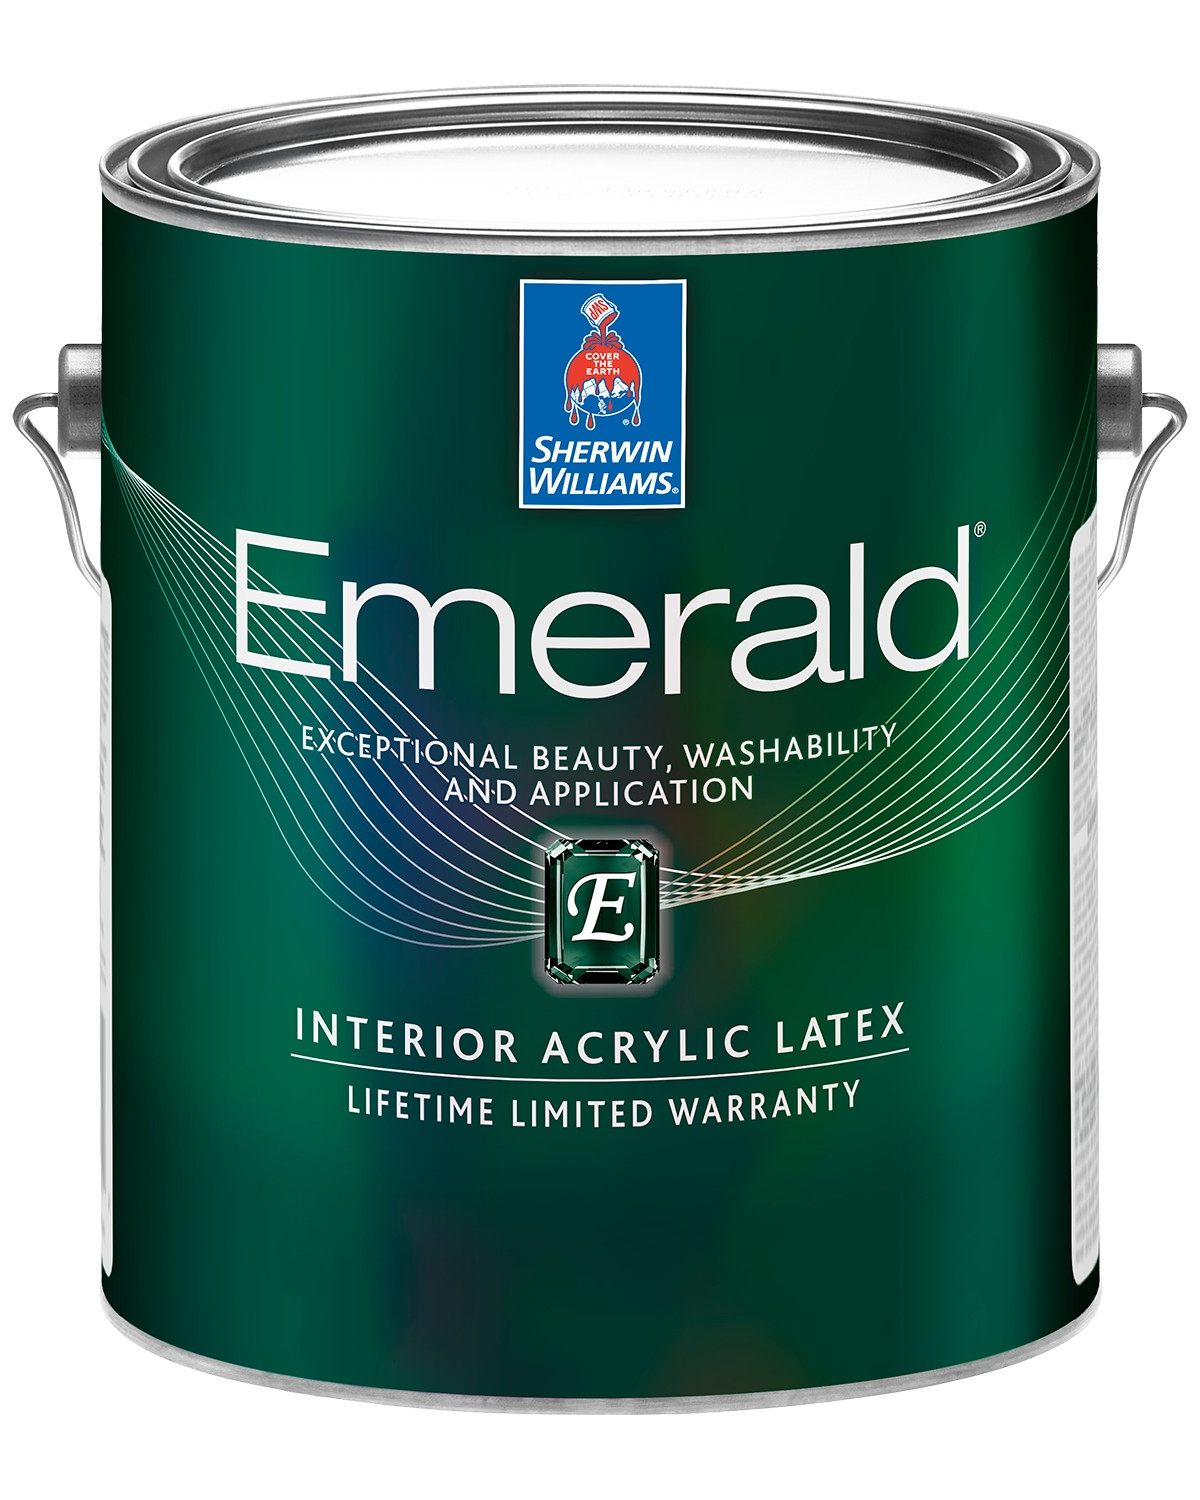 Emerald paint can